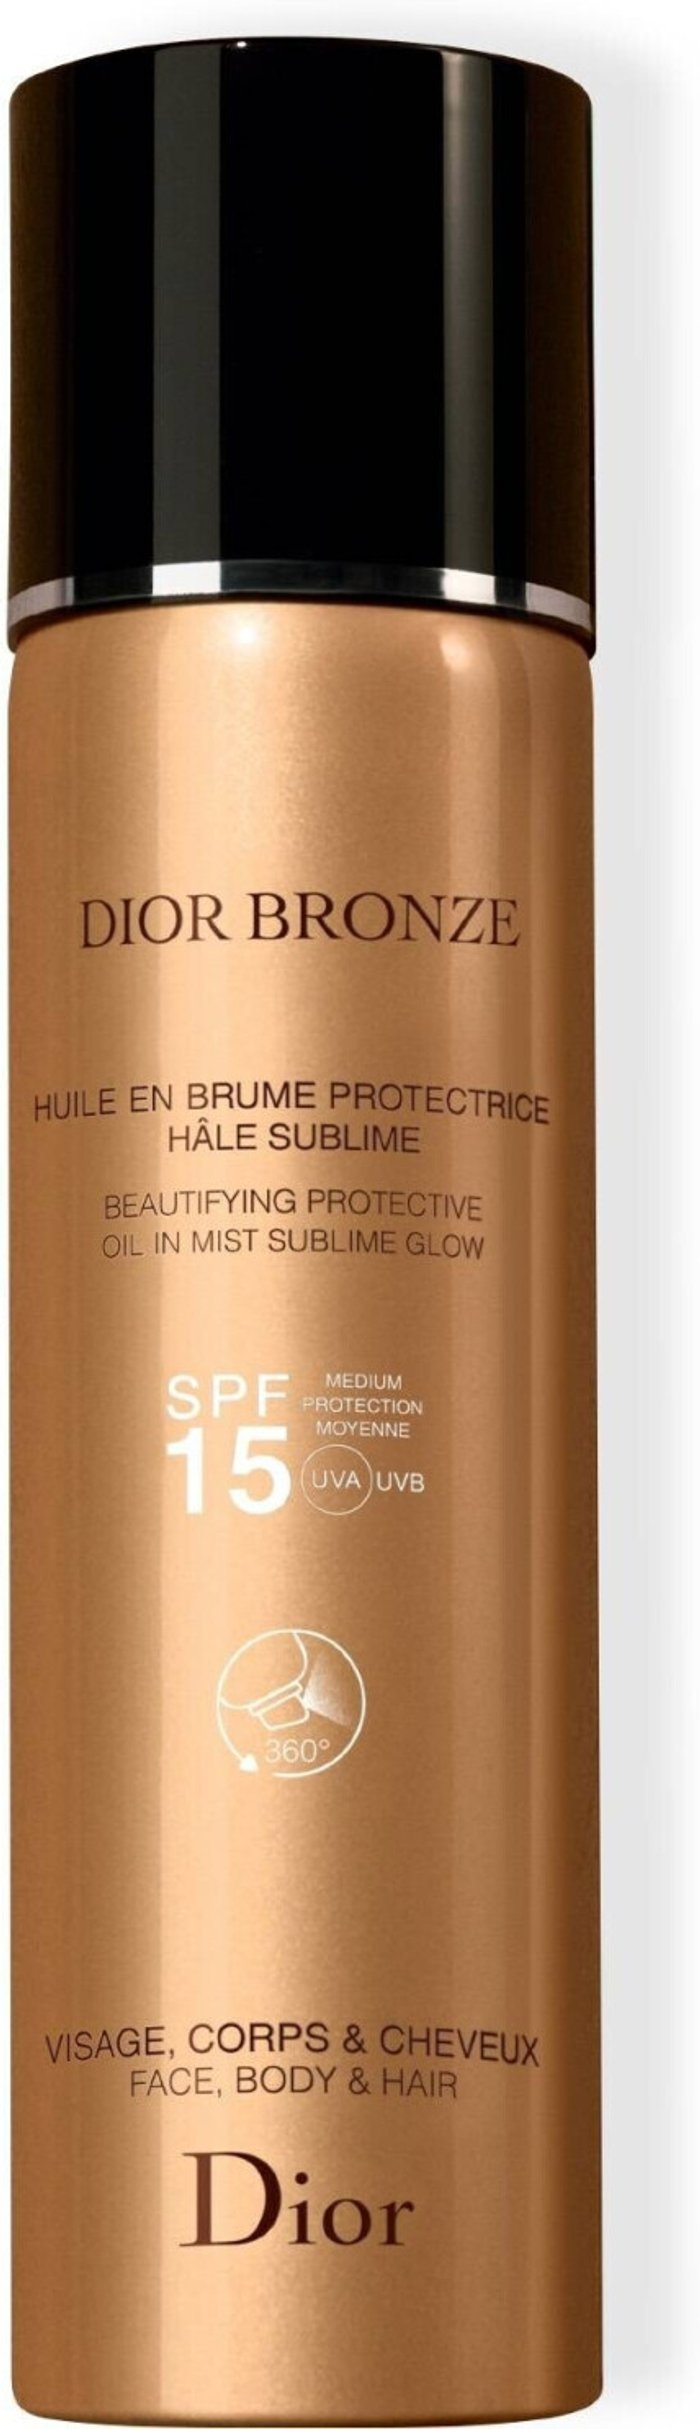 Dior Dior Beautifying Protective Oil in Mist Sublime Glow SPF15 (125ml)